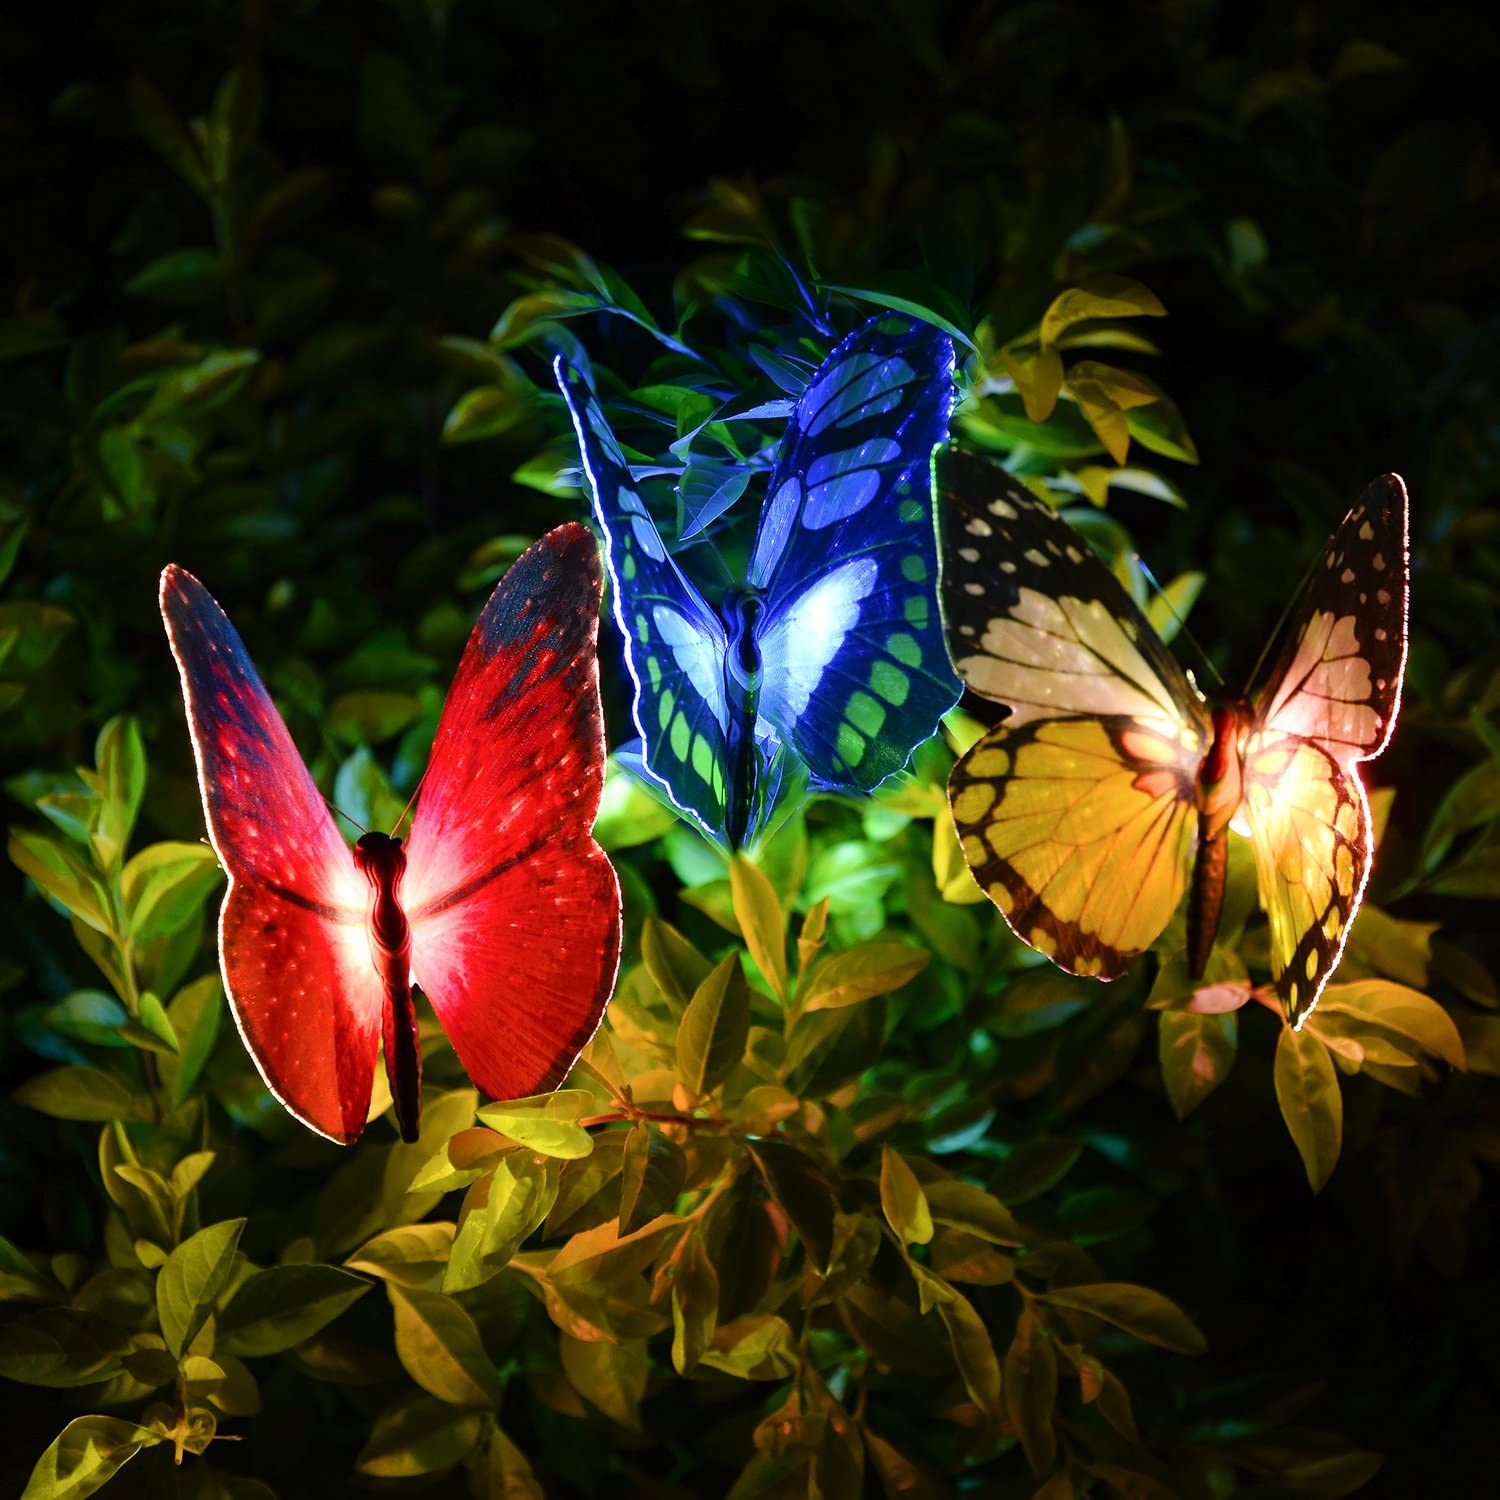 Solar Butterfly Lights,GoLine Christmas Garden Gifts for Housewarming Mother's Day Women Mom, Solar Decorative Lights Outdoor for Yard Patio Decor, 3 Pack.